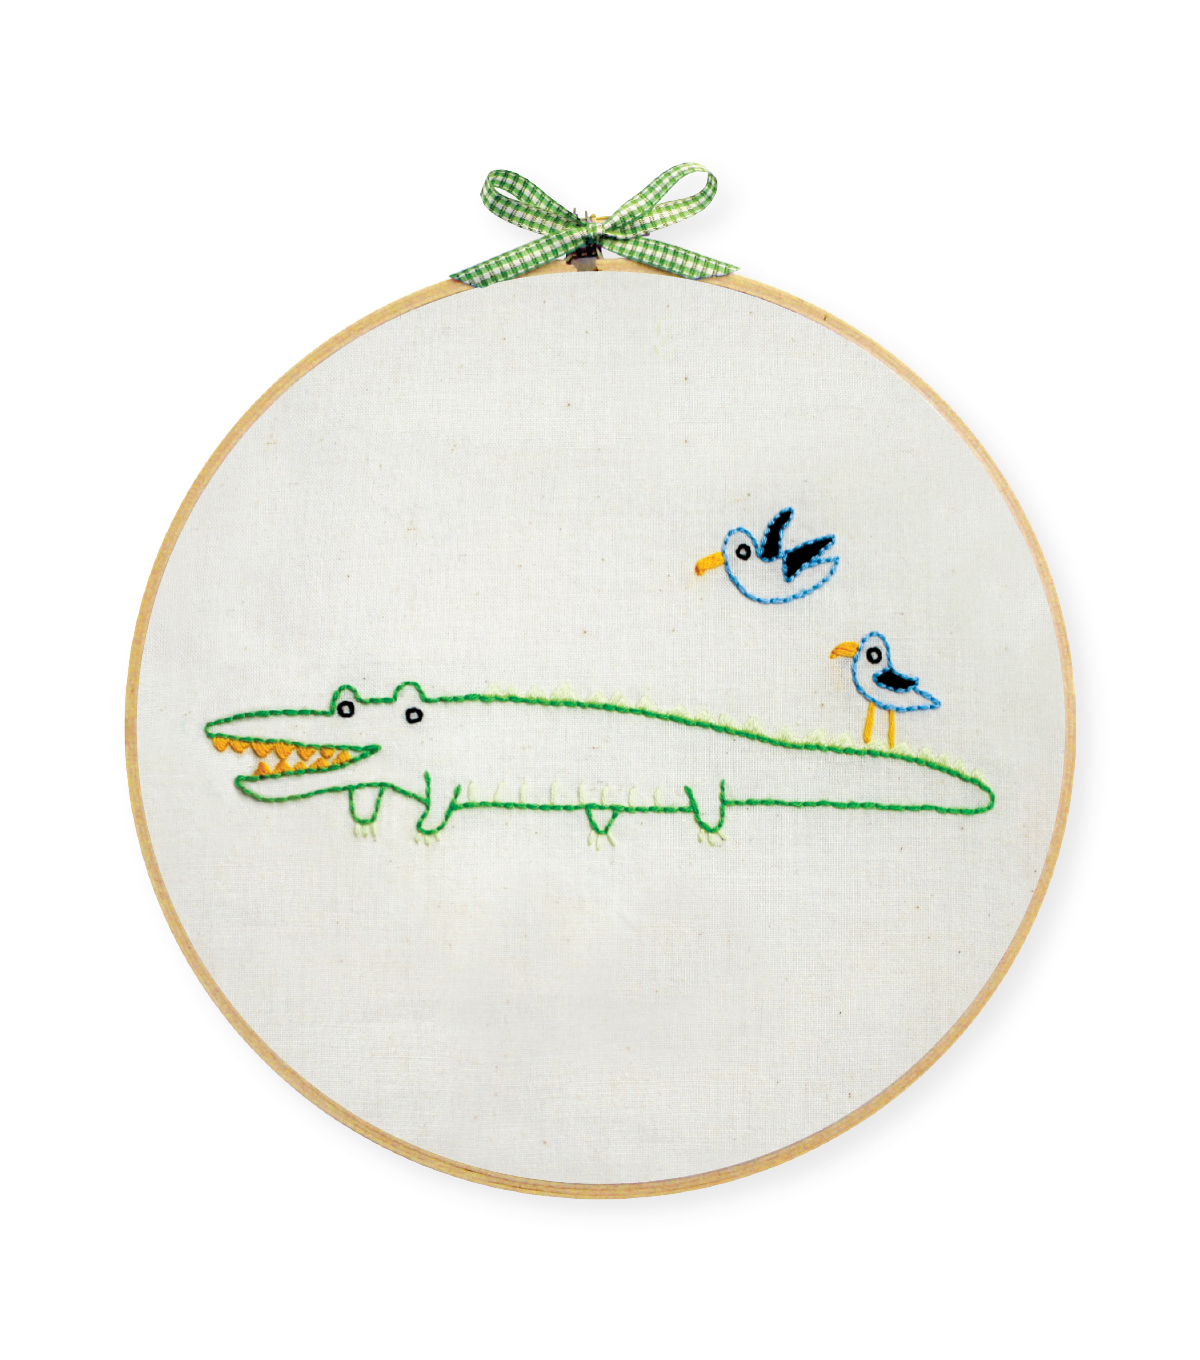 Alligator Hand Embroidery Wall Art Kit